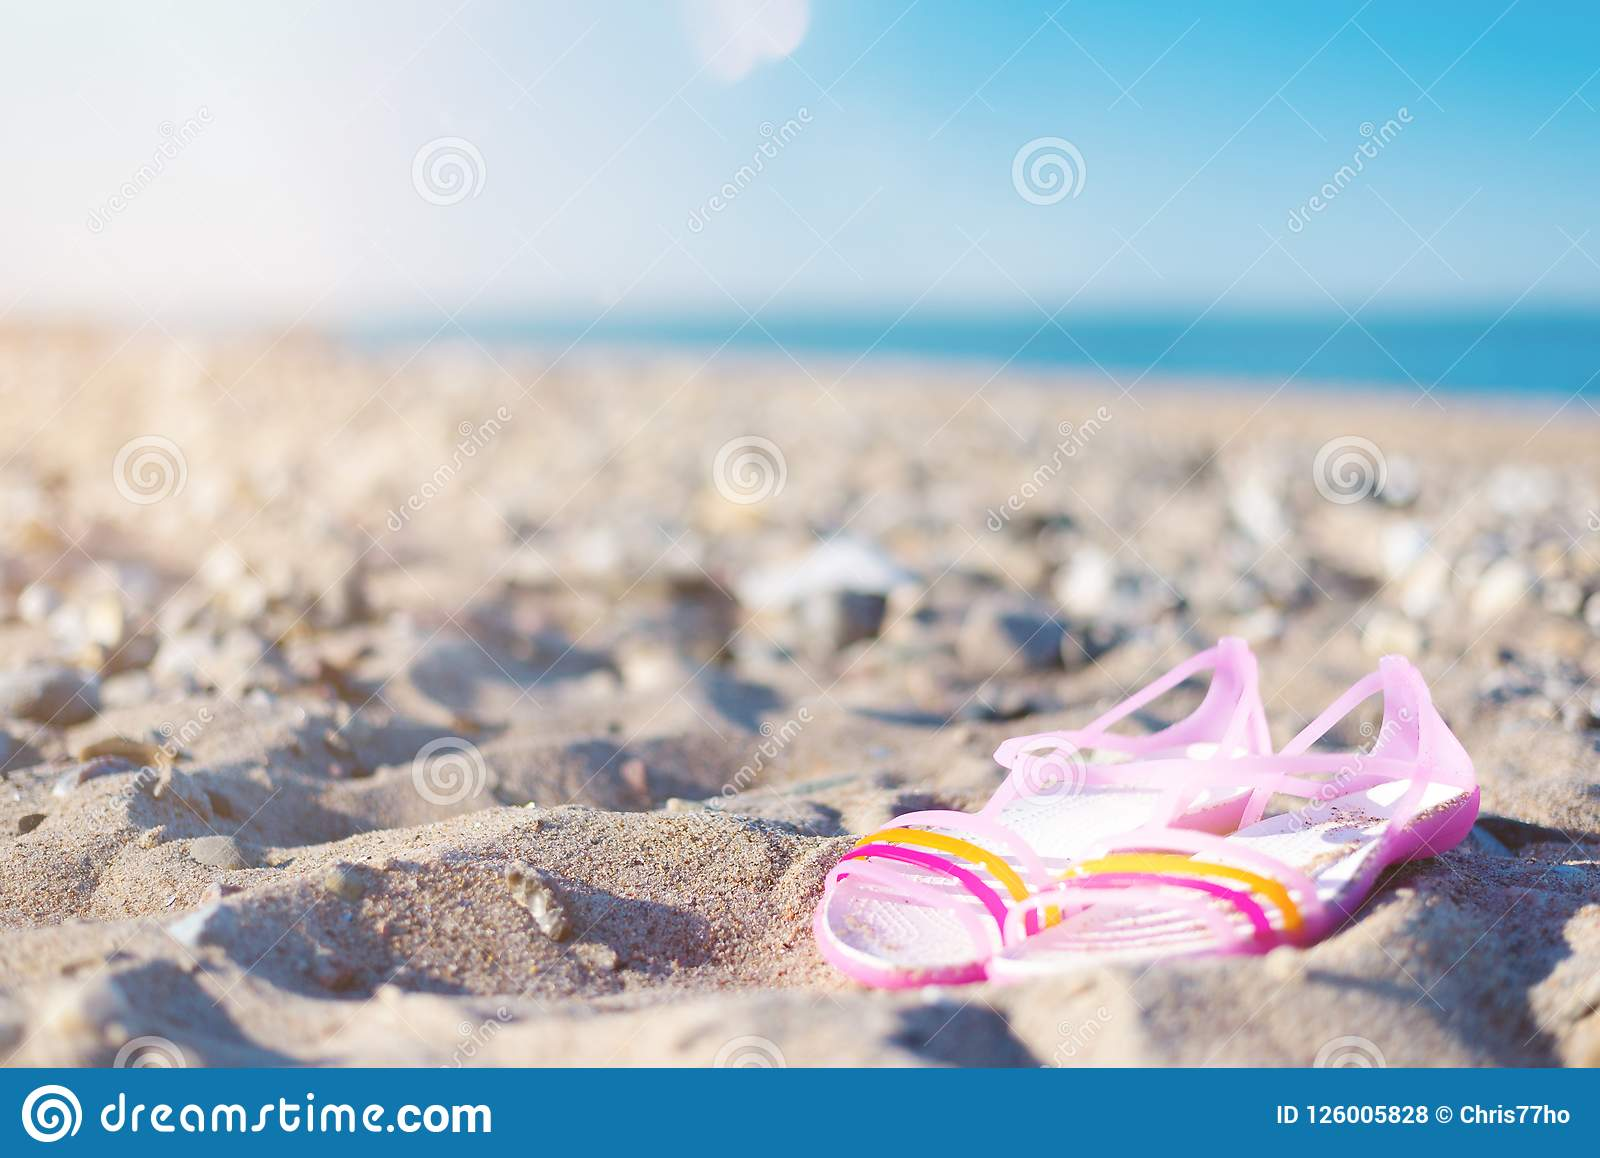 1c403262d Low angle view close-up of pair of shoes on empty beach on clear sunny  summer day